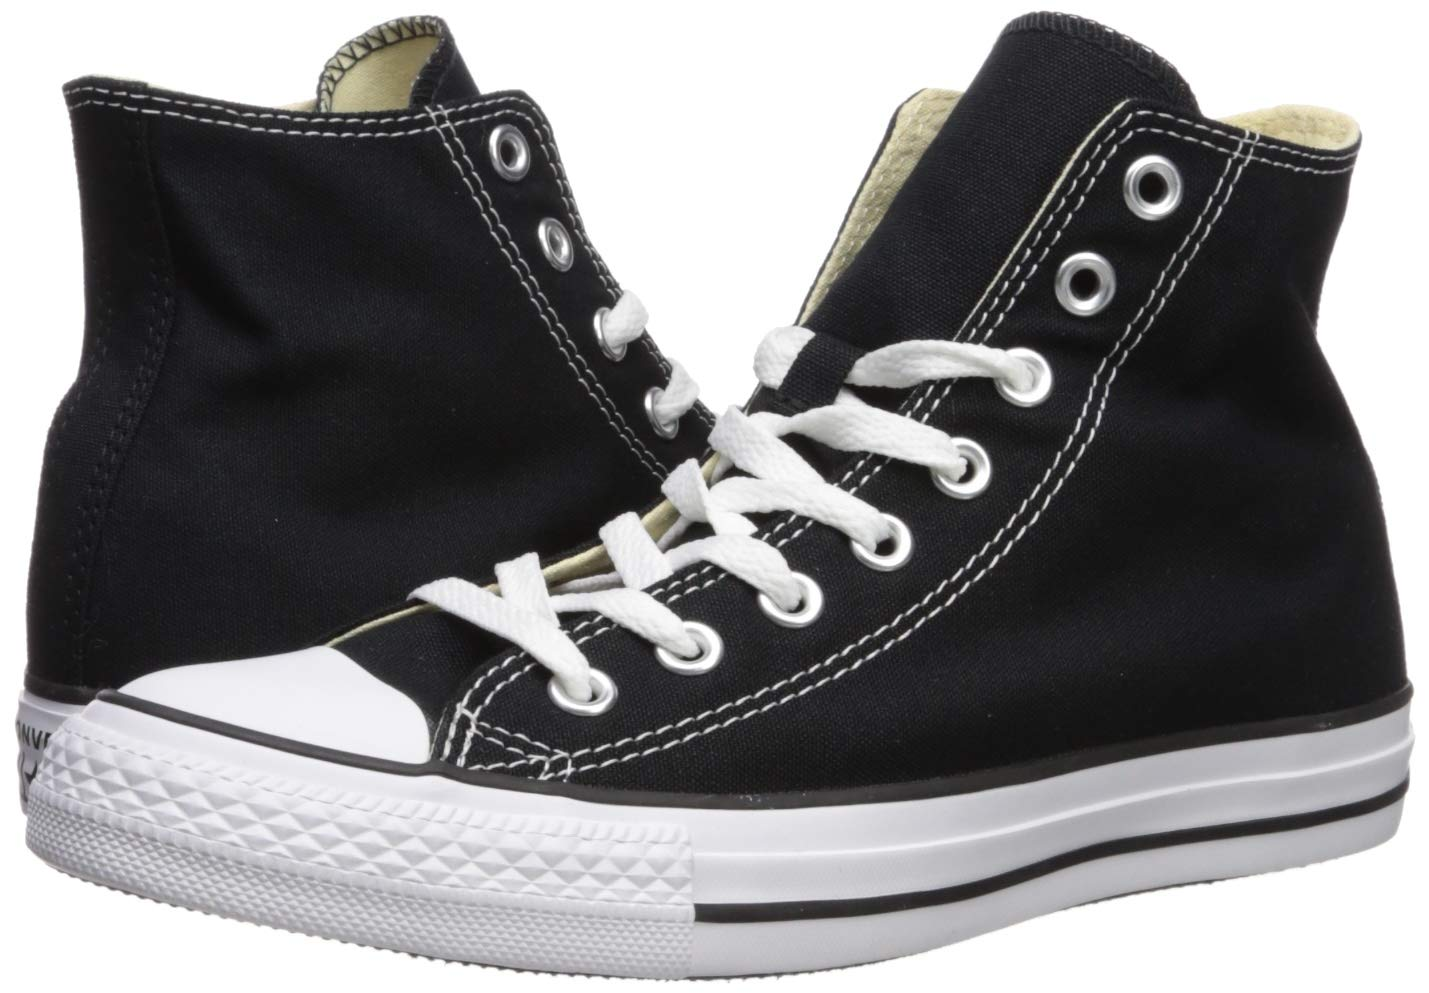 Chuck Taylor All Star Canvas High Top, Black, 4 M US by Converse (Image #6)